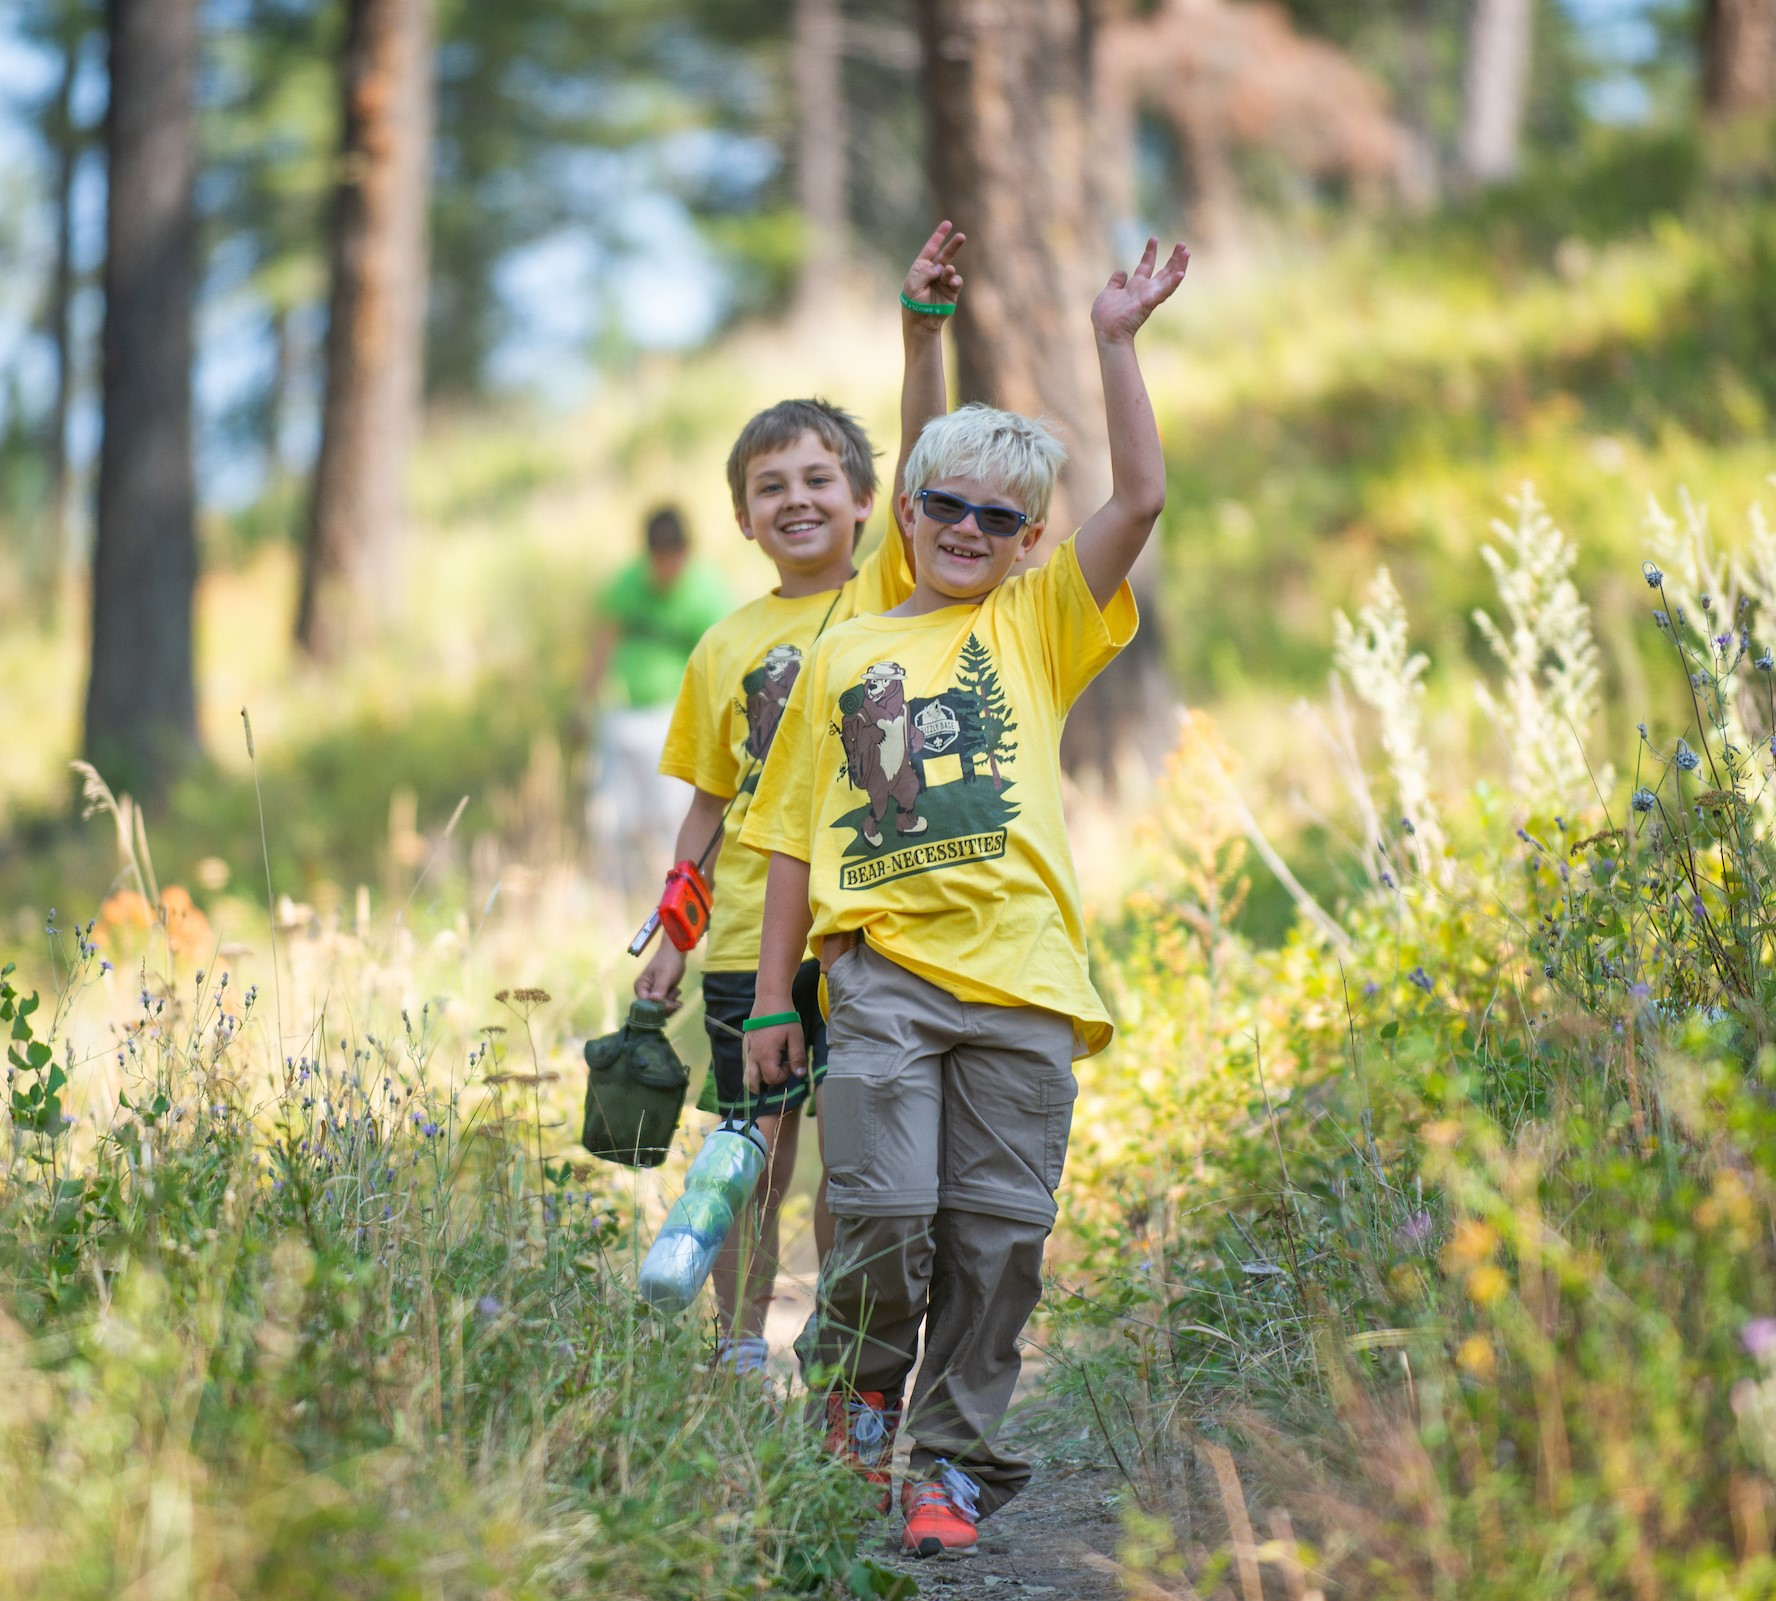 Two Cub Scouts smile as they follow a hiking trail at summer camp.